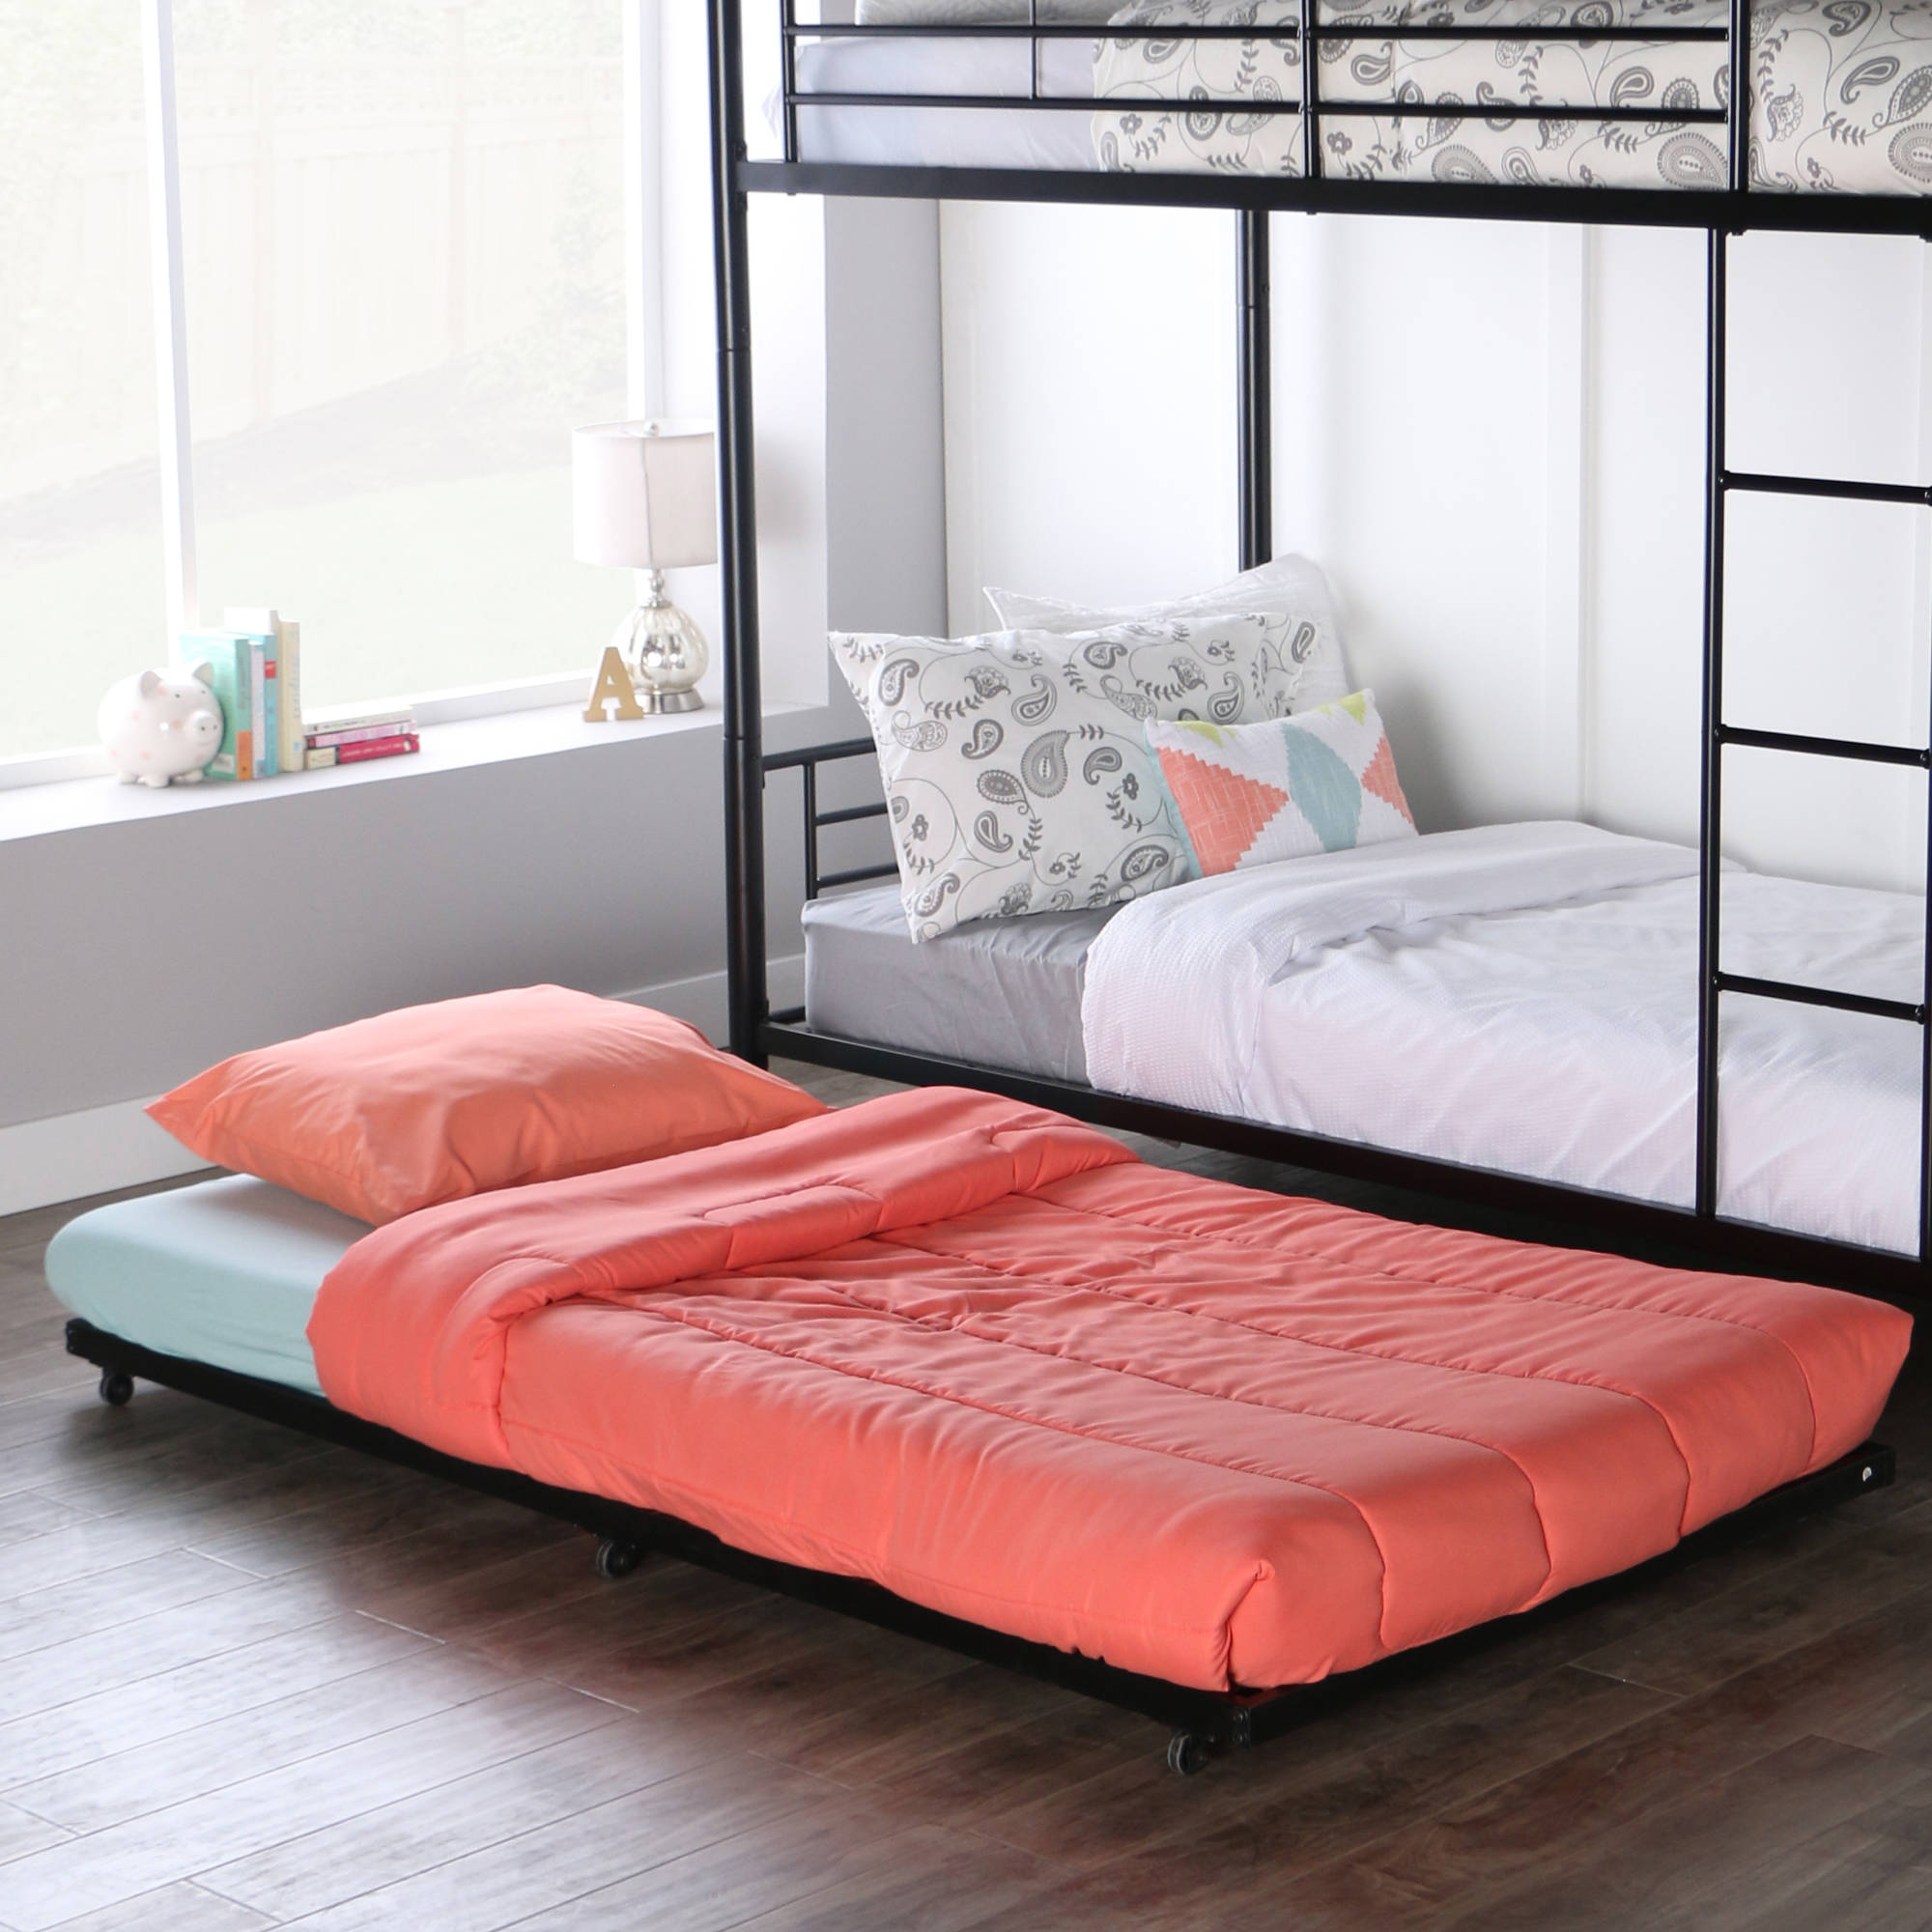 Black Metal Twin Bed Roll Out Trundle Frame   Walmart.com